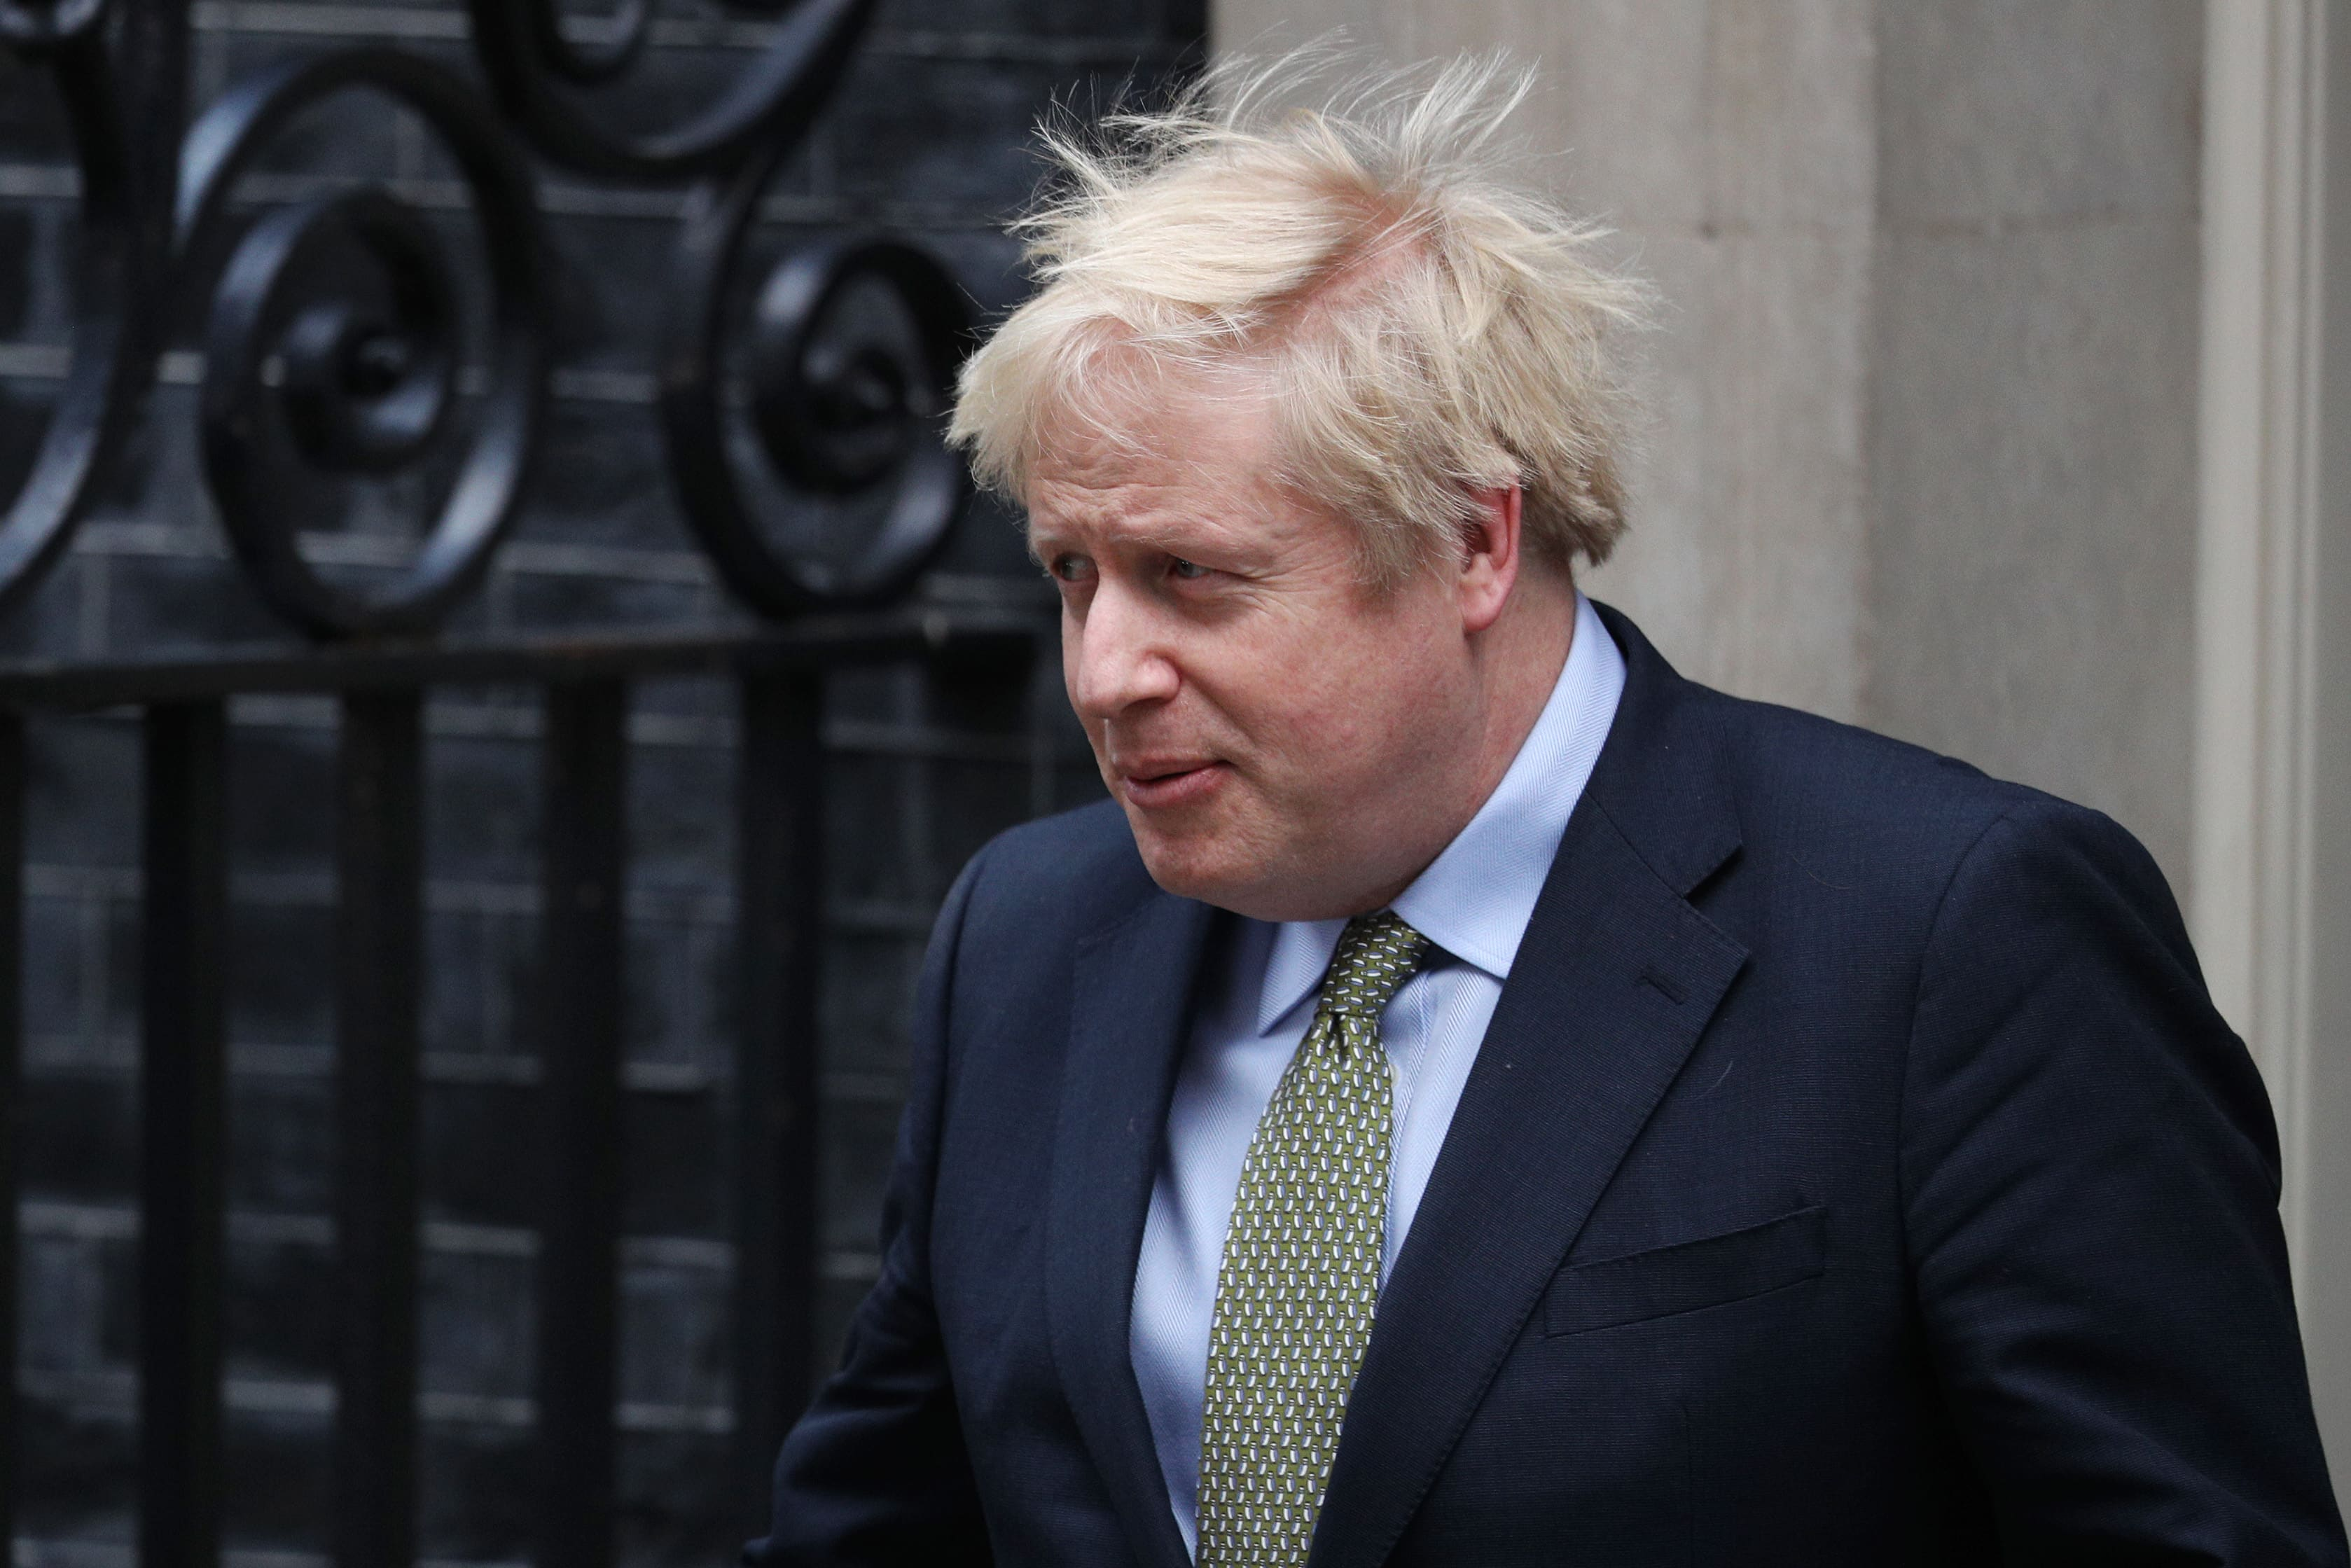 Boris Johnson will make history if he can save the UK from division and achieve these 5 goals